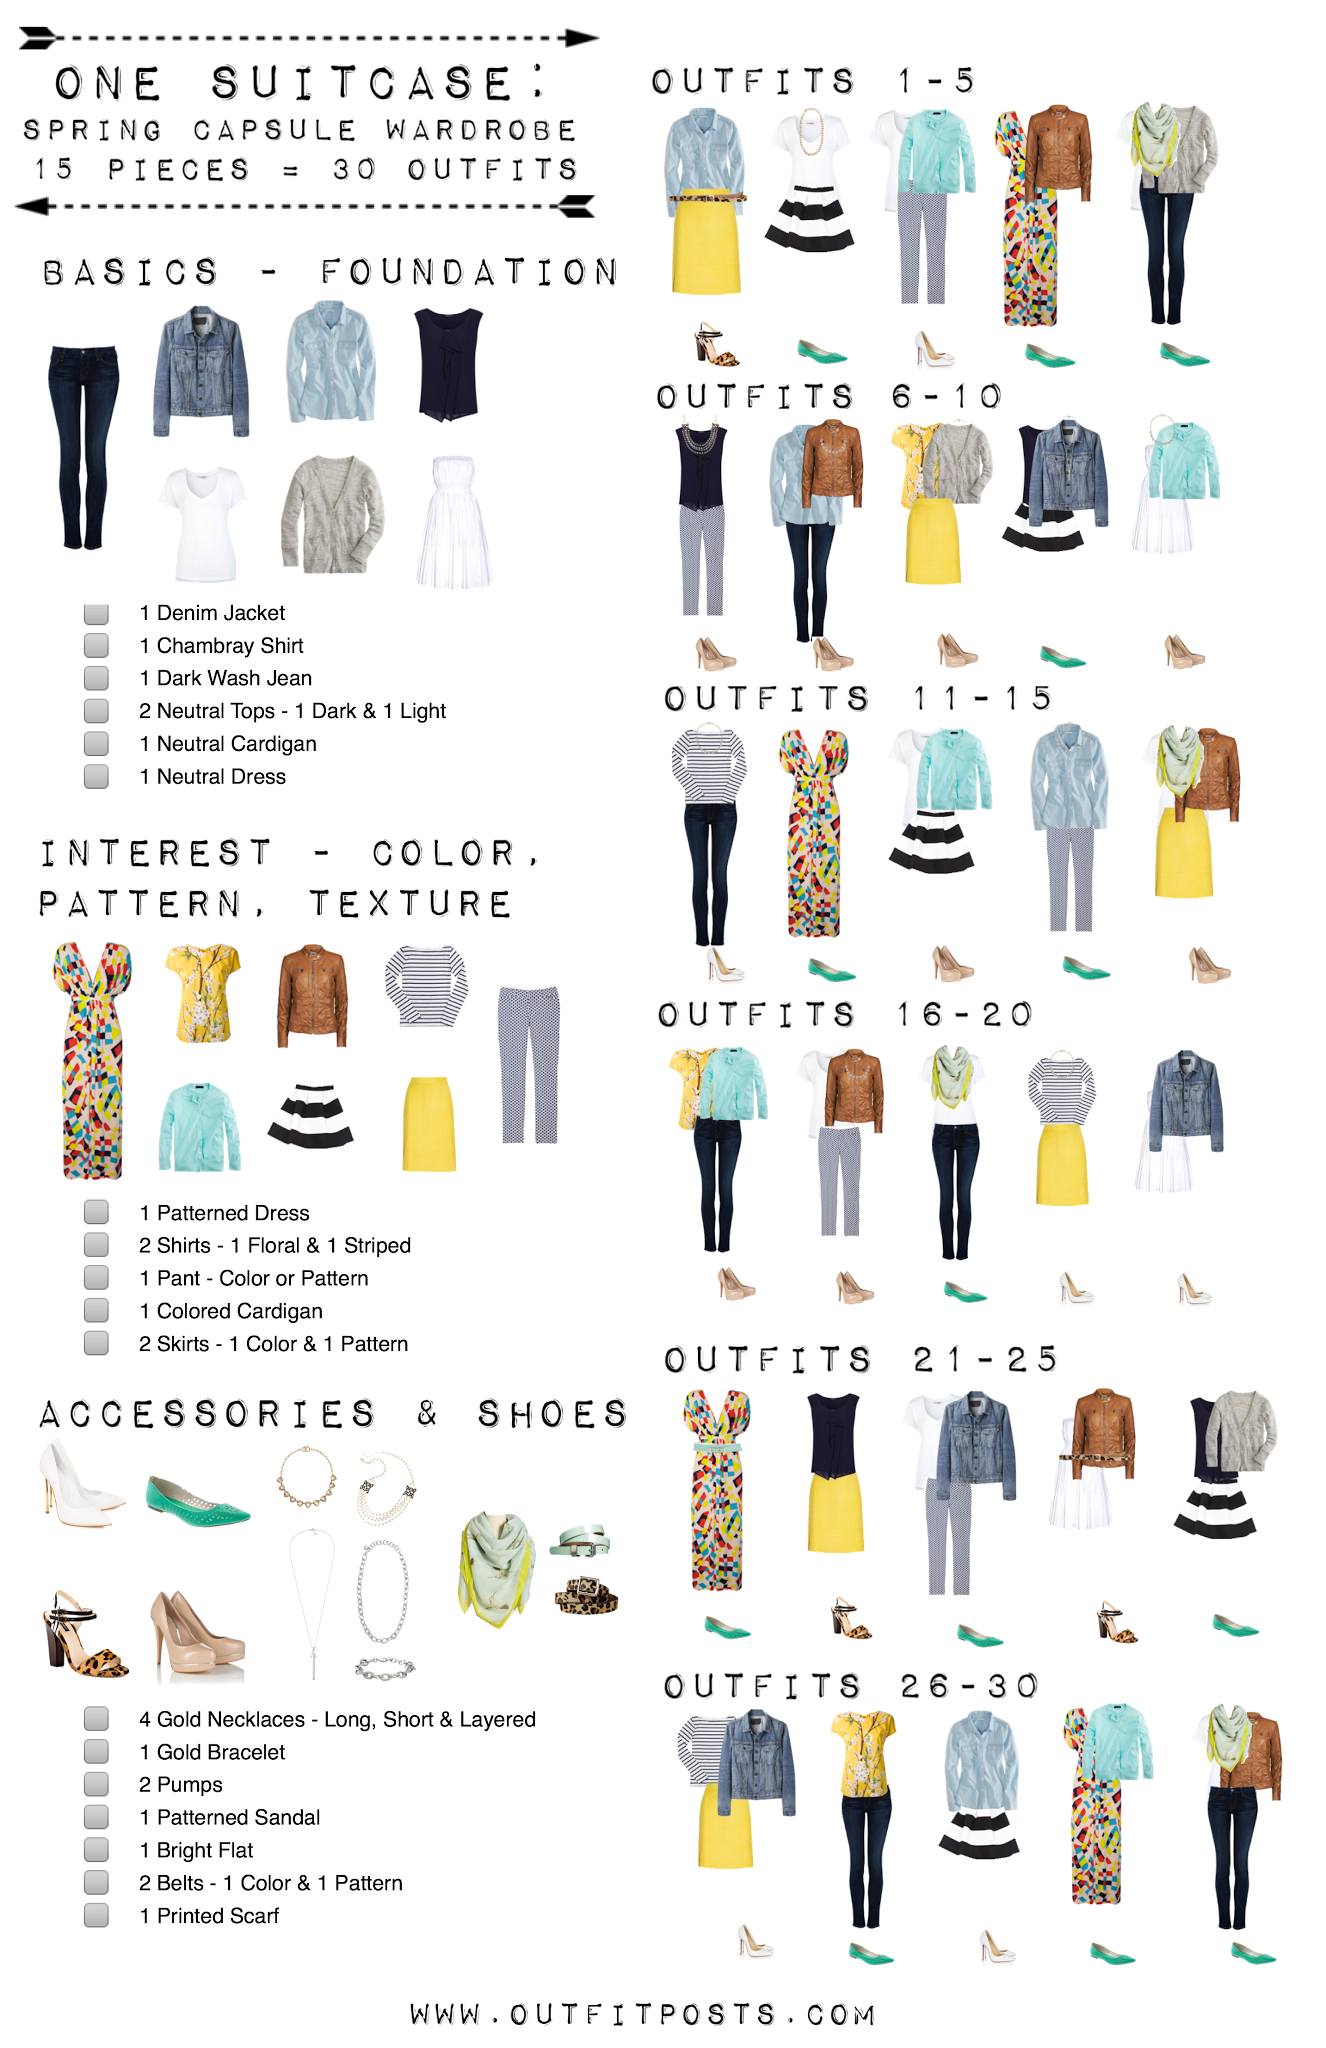 15 easy pieces for 30 summer outfits capsule wardrobe checklist b4f77 springcapsulewardrobe pronofoot35fo Image collections